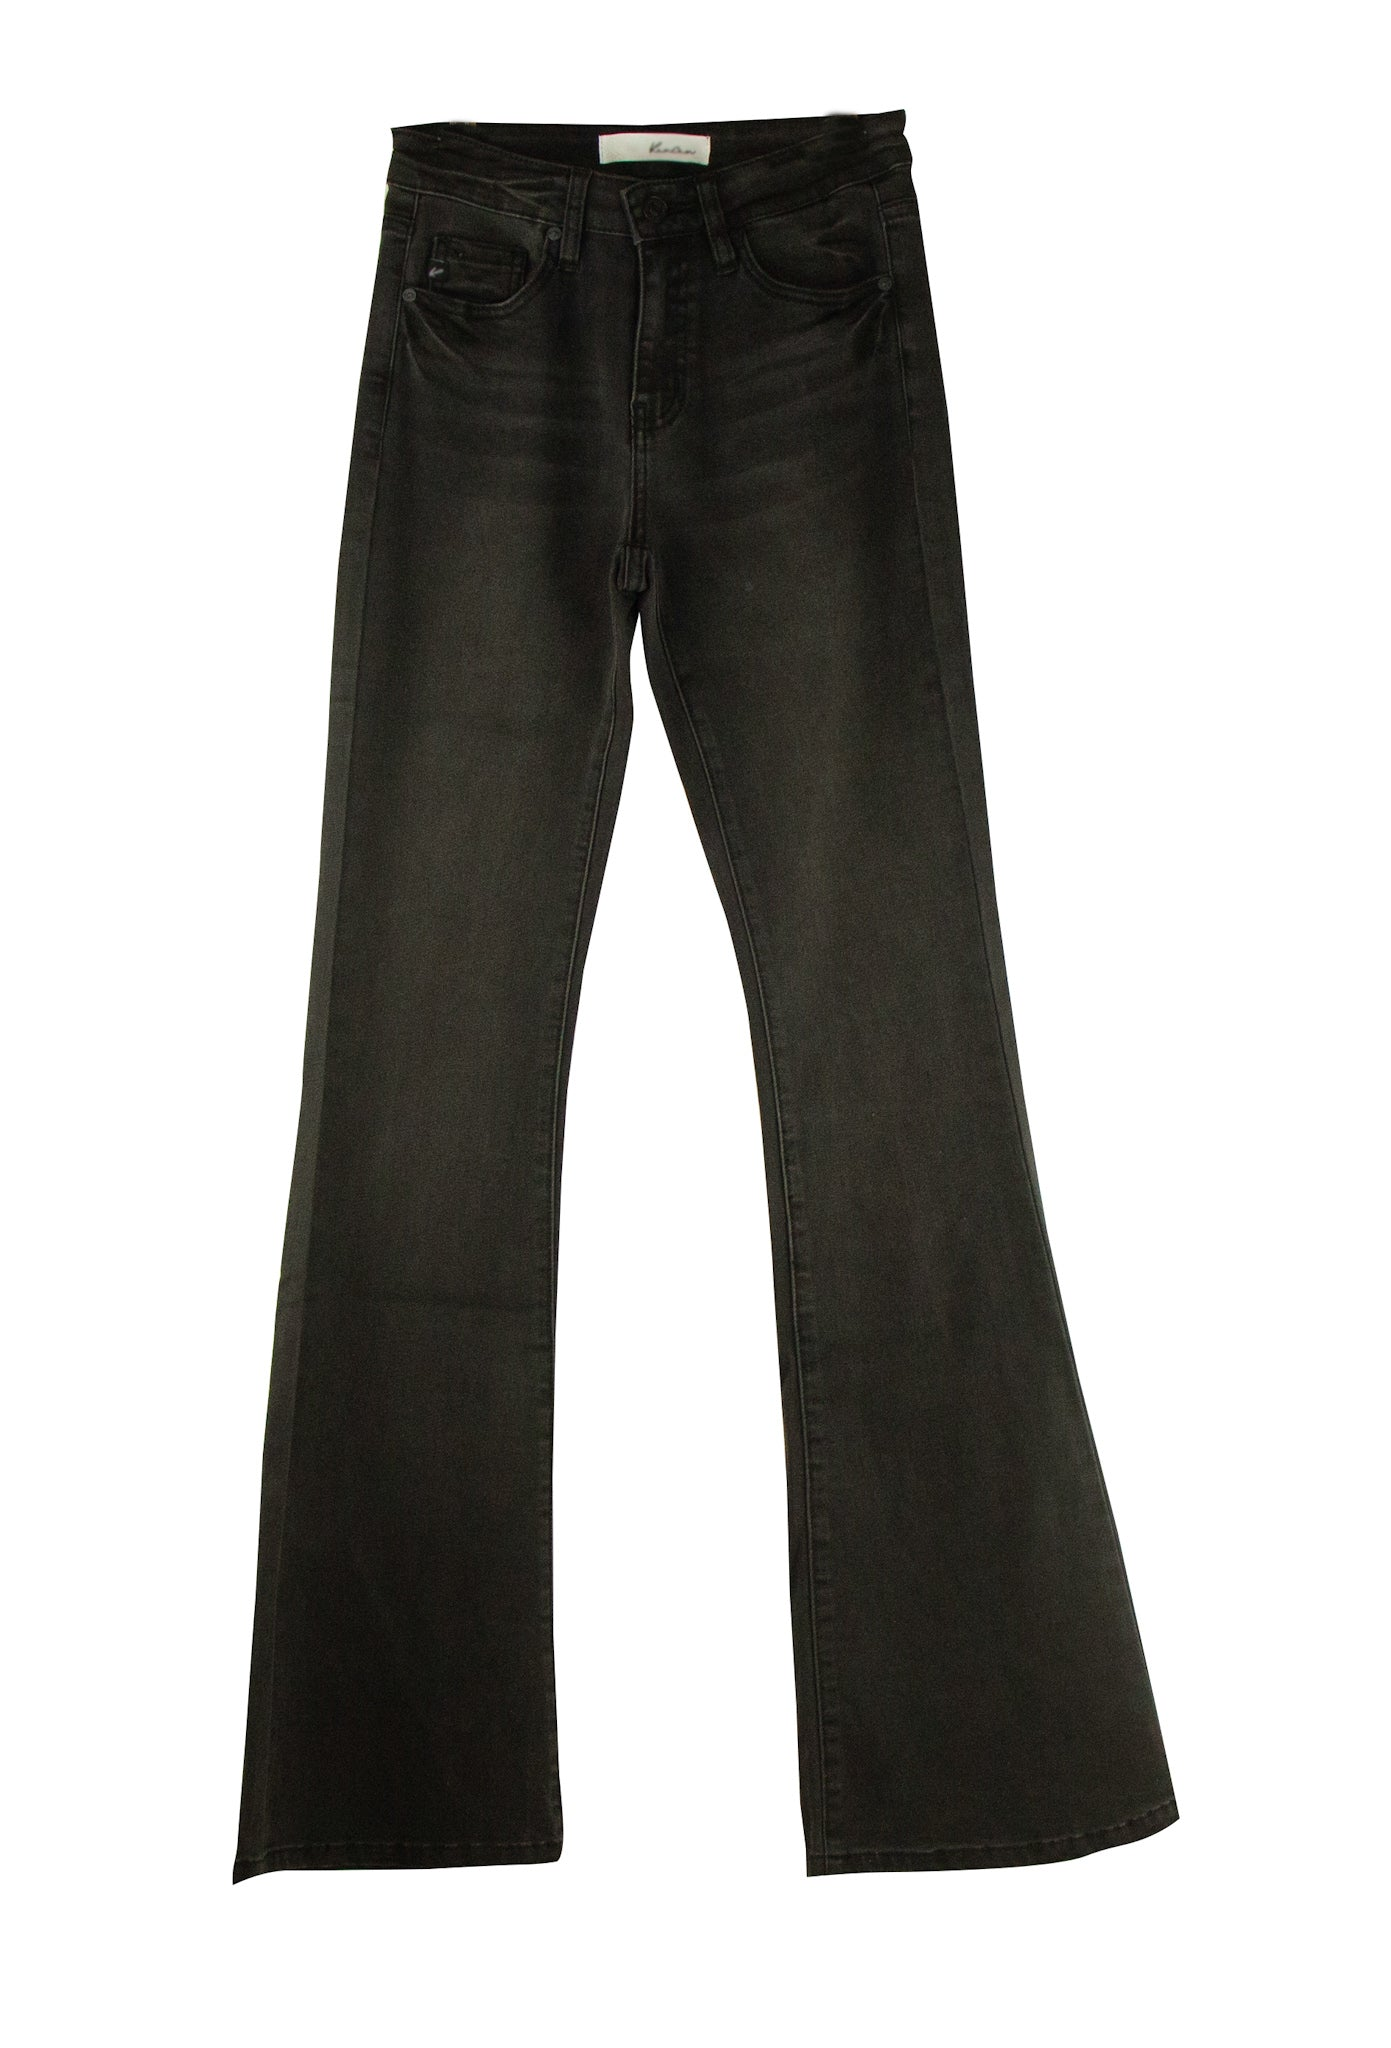 Deductions Jeans in Black